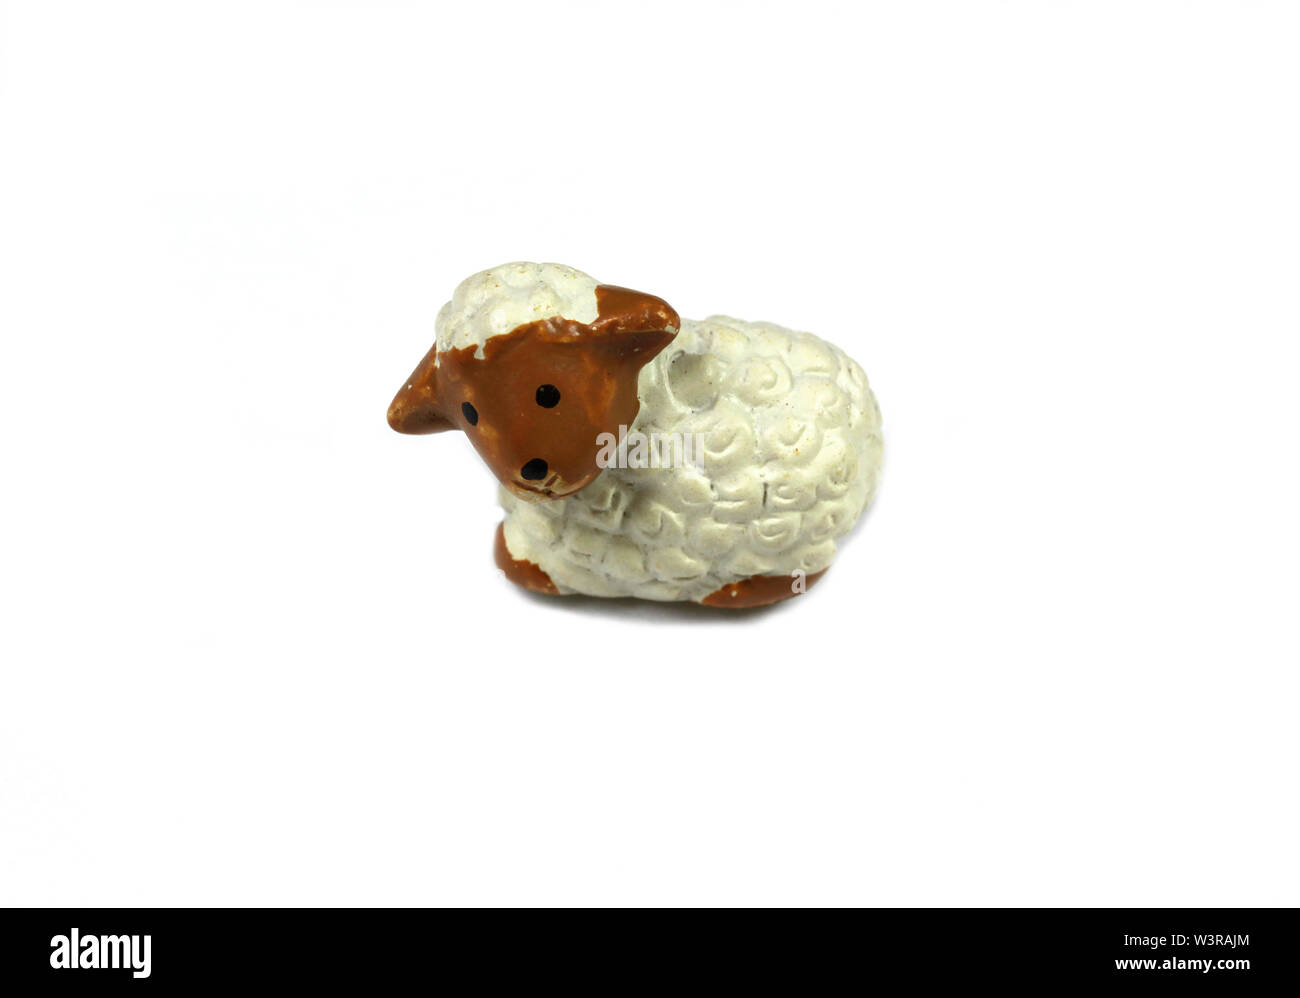 Small lamb figure over white background - Stock Image